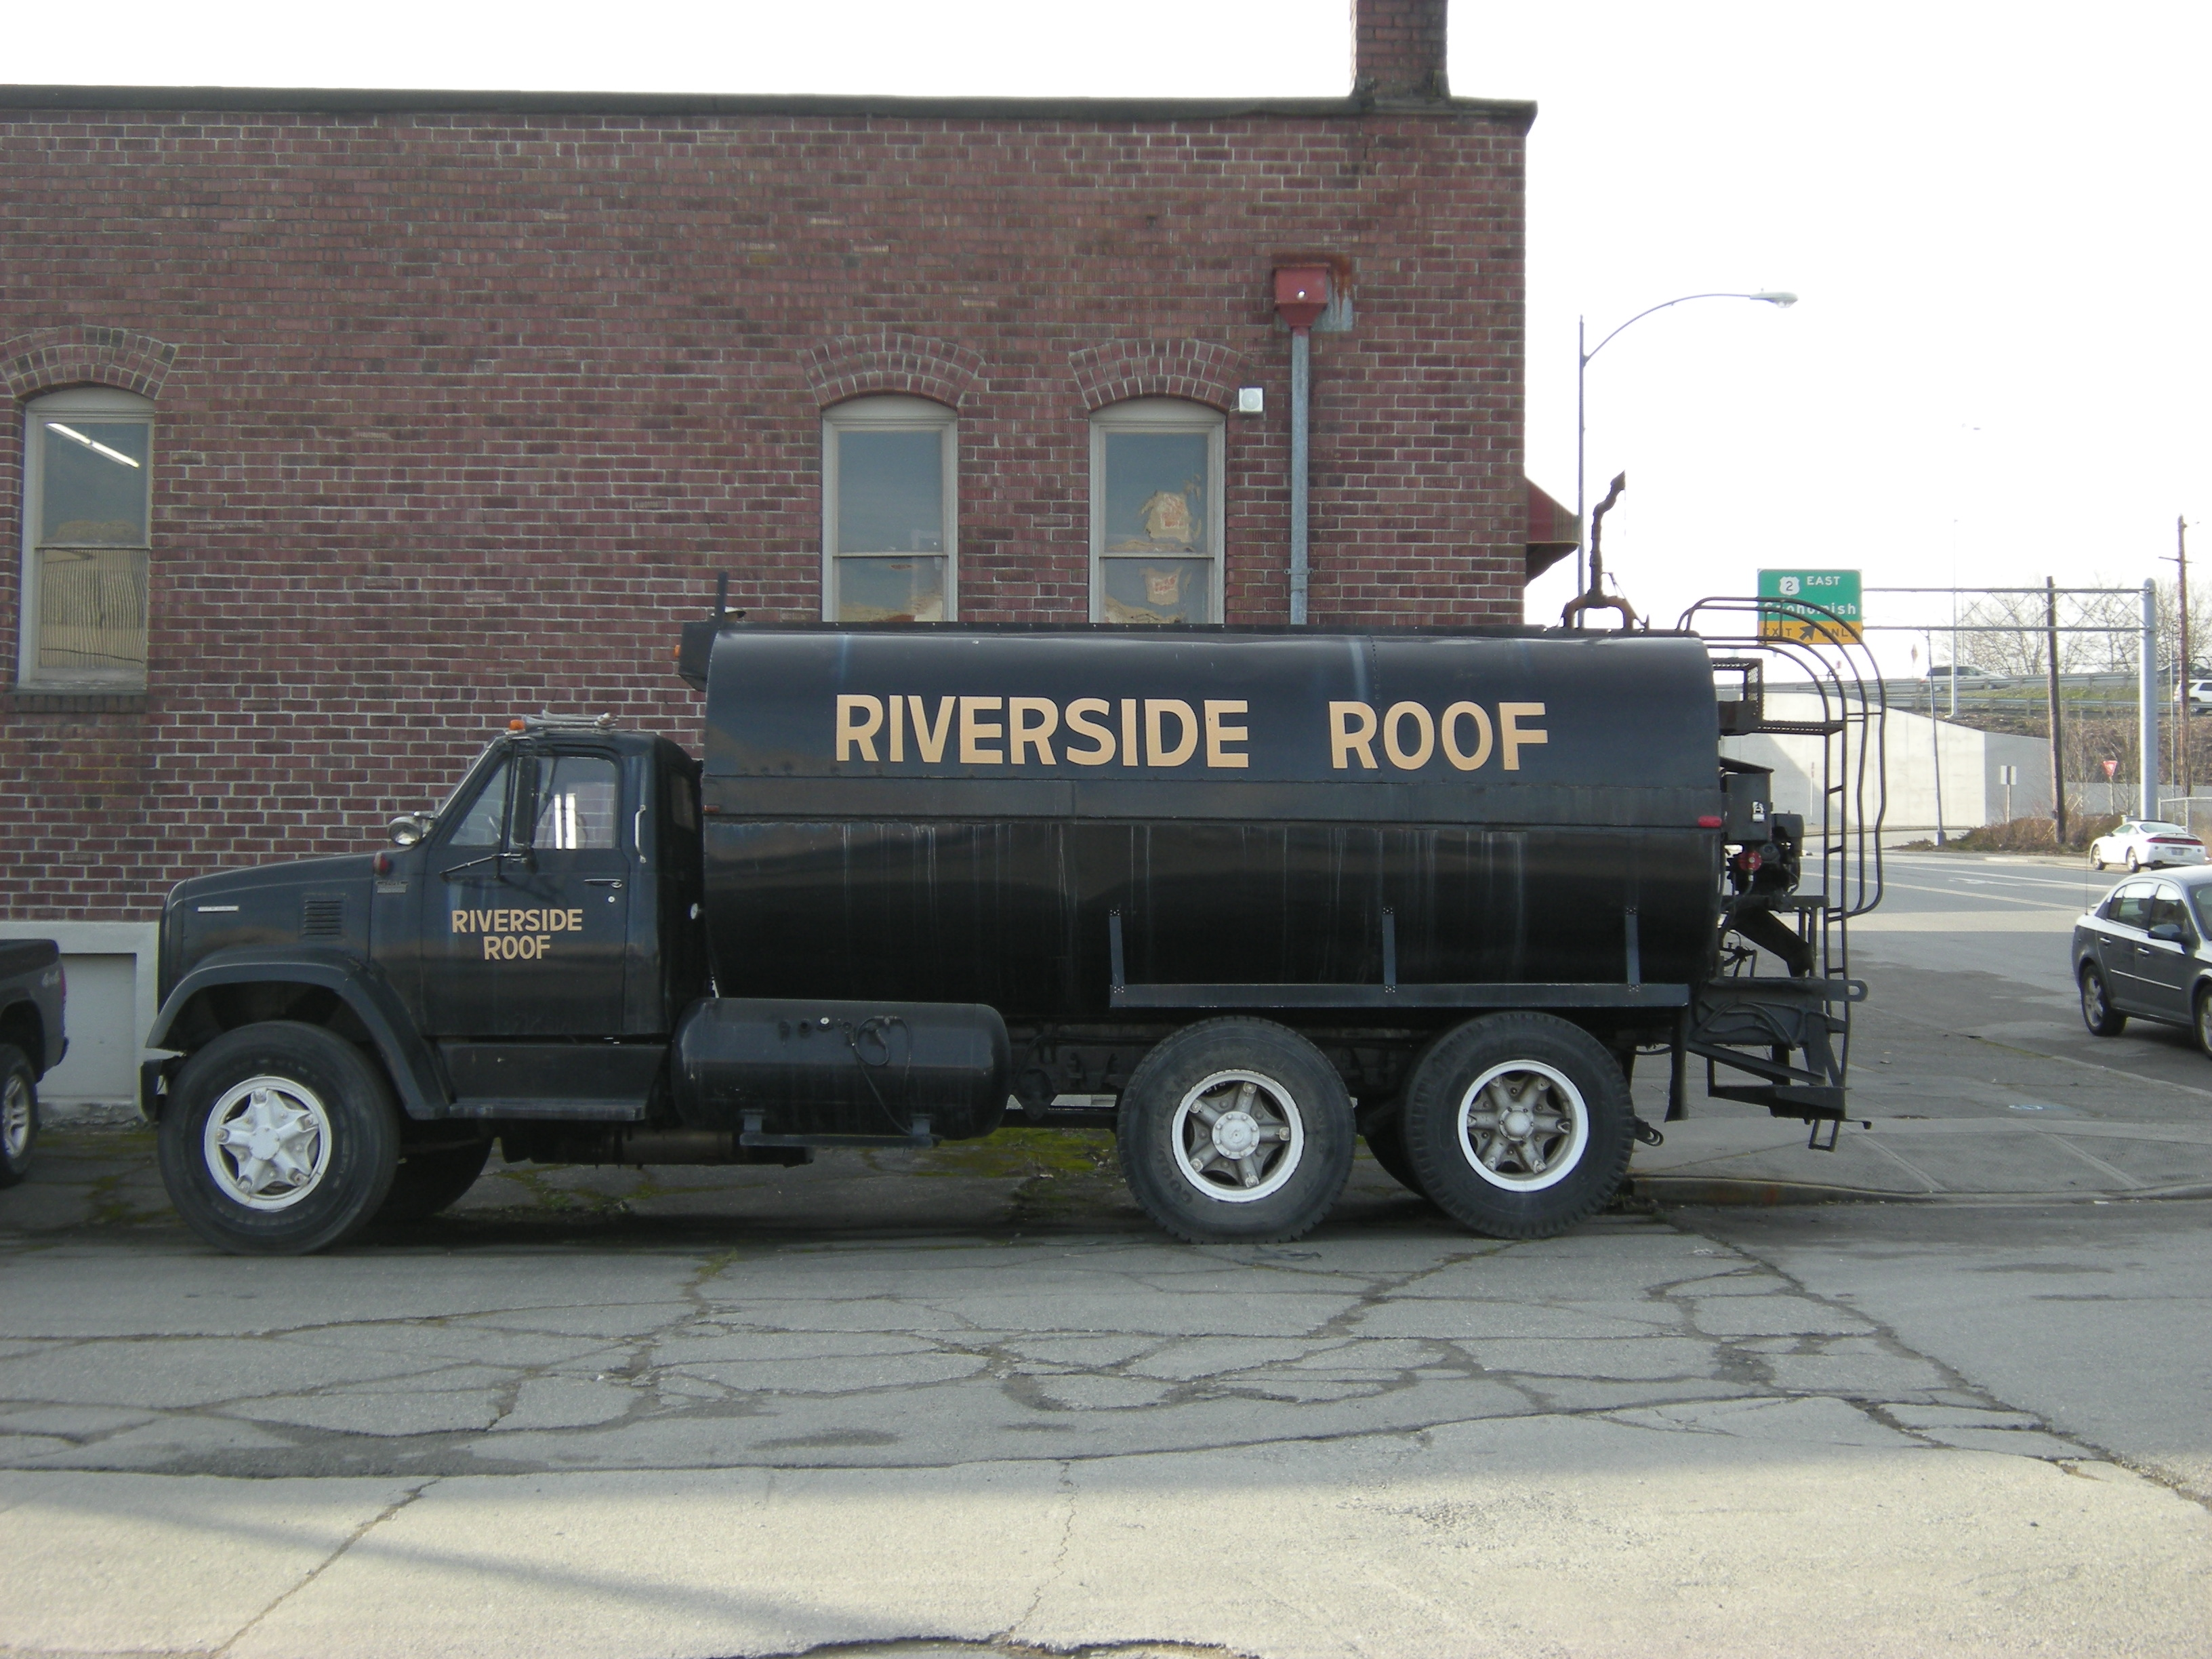 Roofing Tar File Everett Riverside Roof Tar Truck Jpg Wikimedia Commons